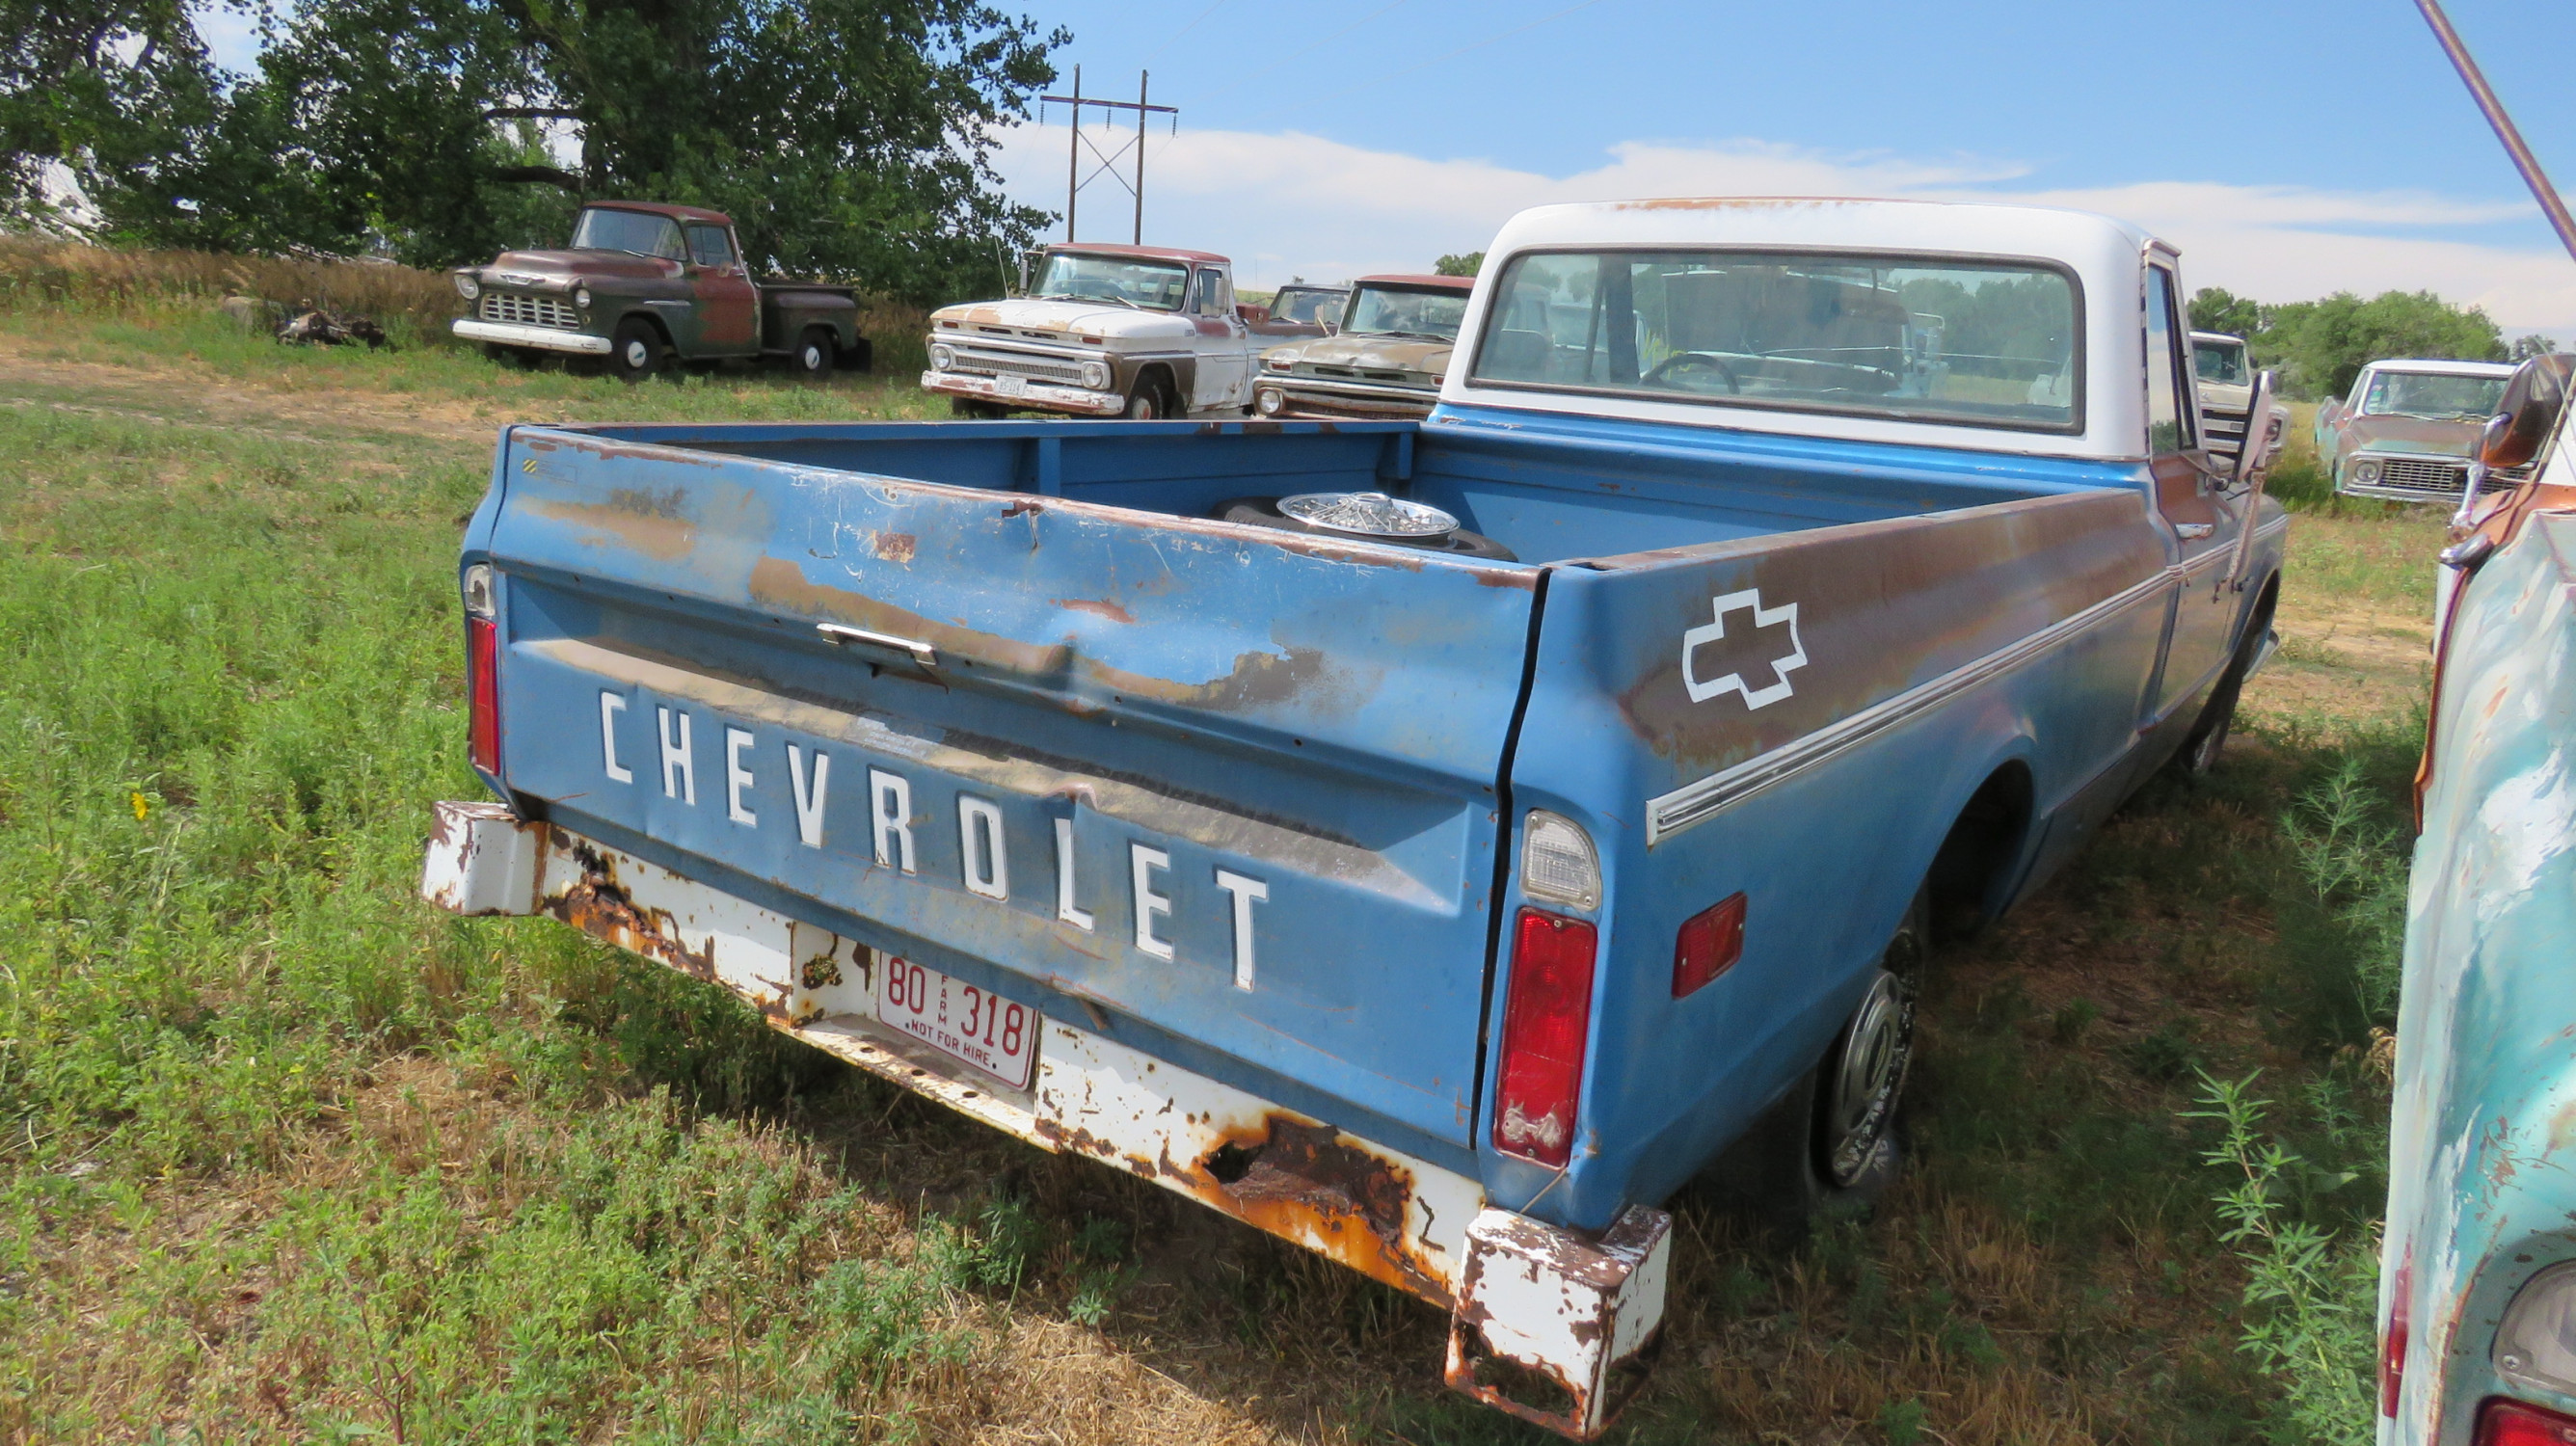 1971 CHEVROLET PICKUP - Image 3